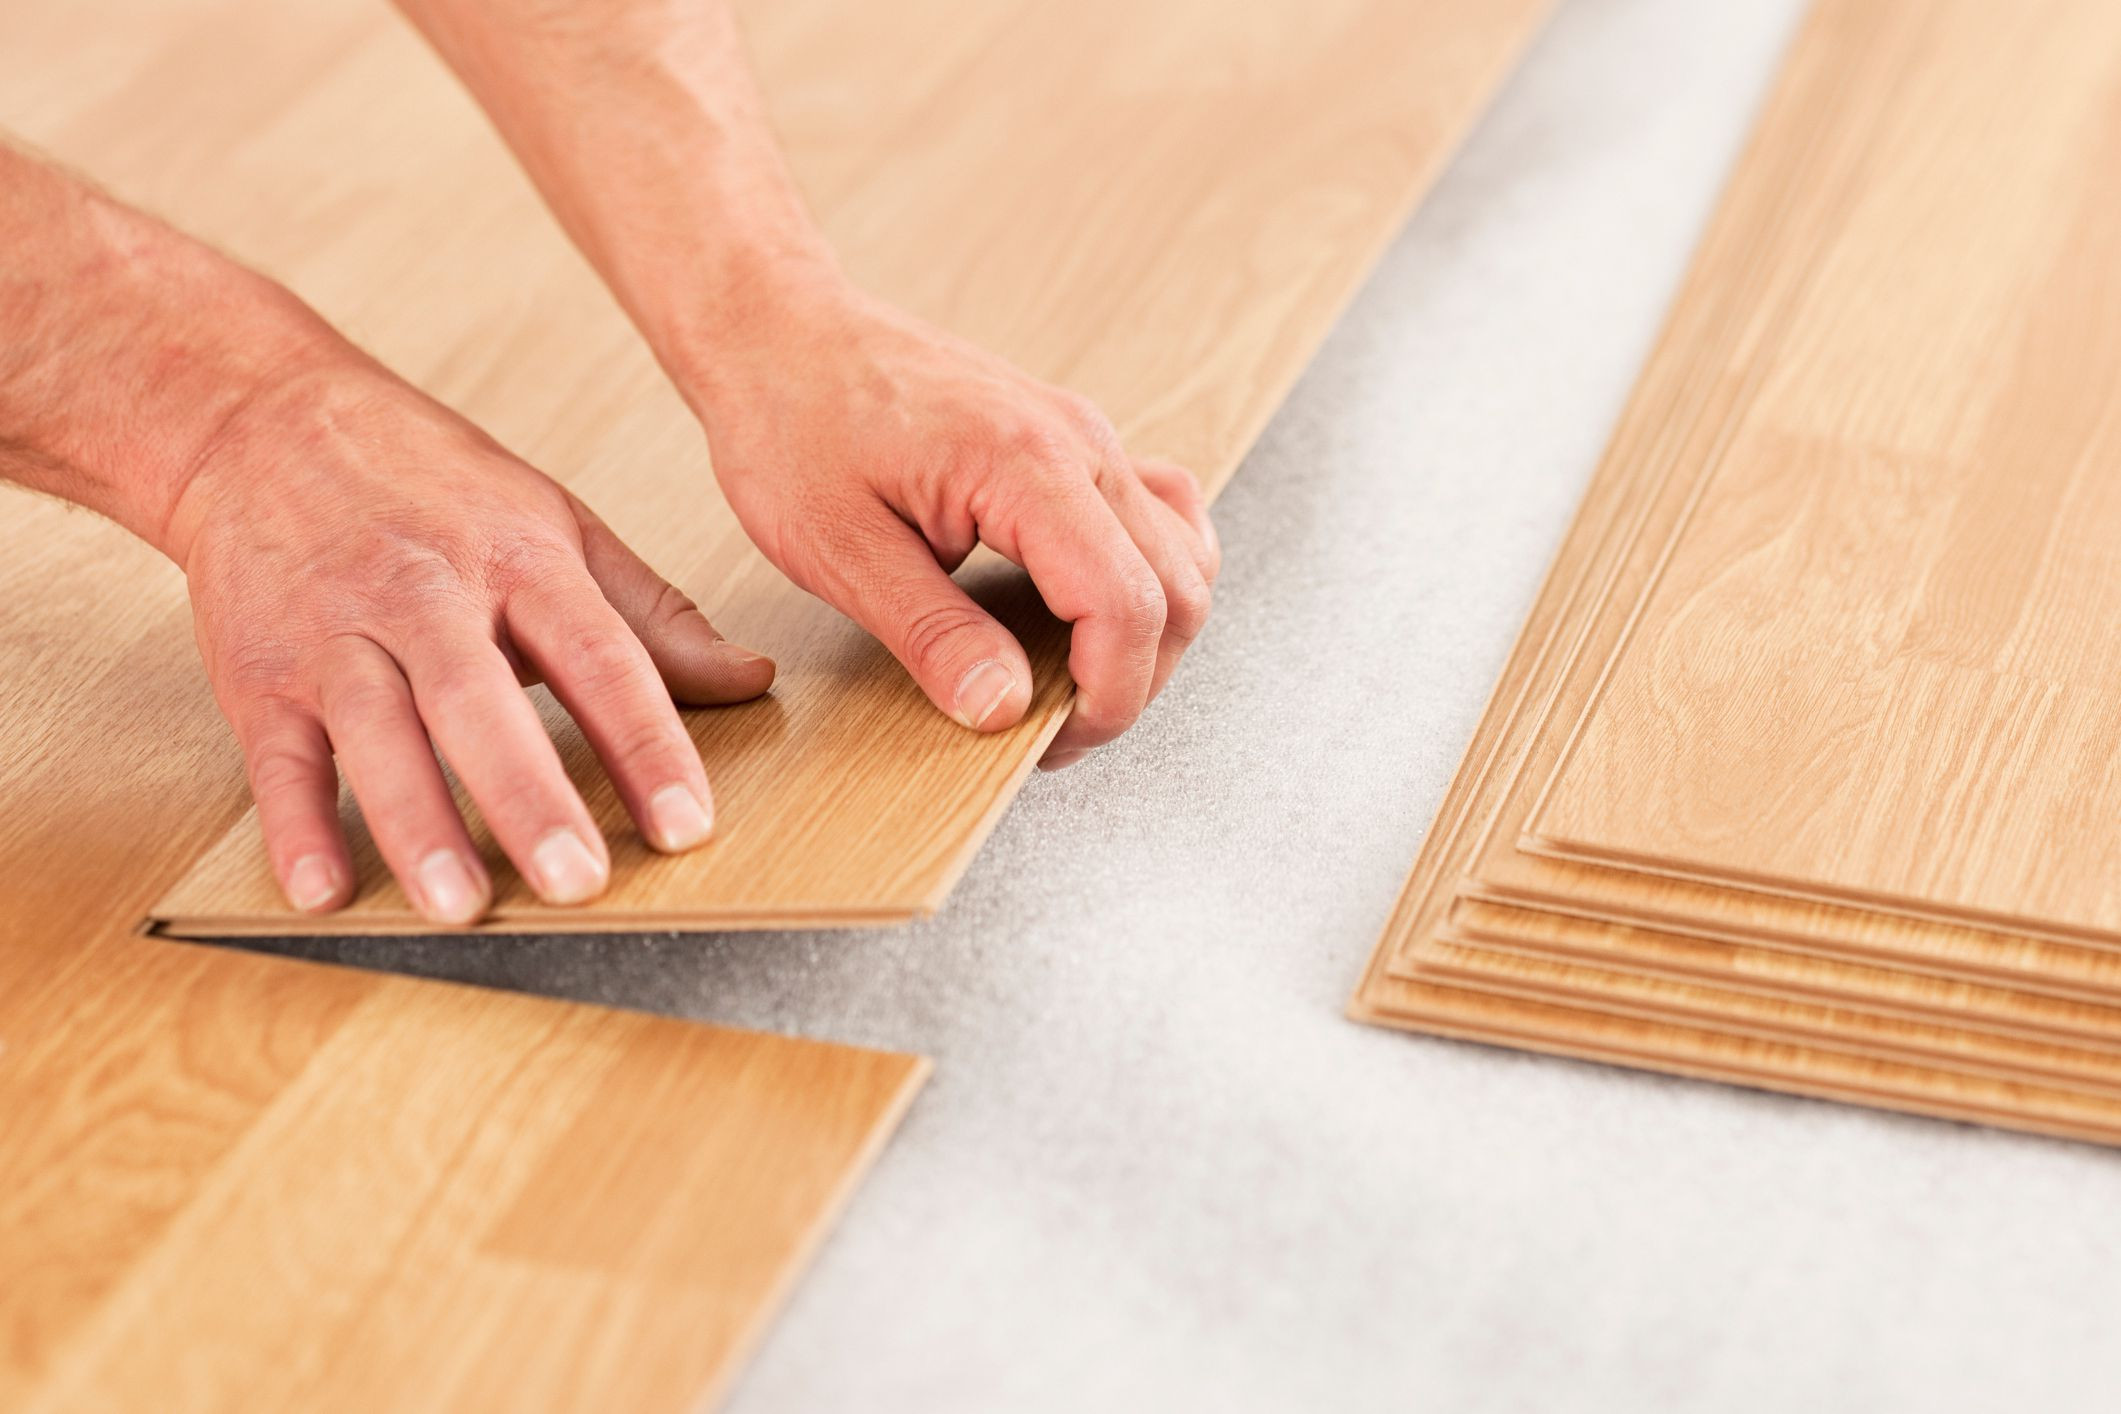 hardwood flooring installation issues of laminate underlayment pros and cons with laminate floor install gettyimages 154961561 588816495f9b58bdb3da1a02